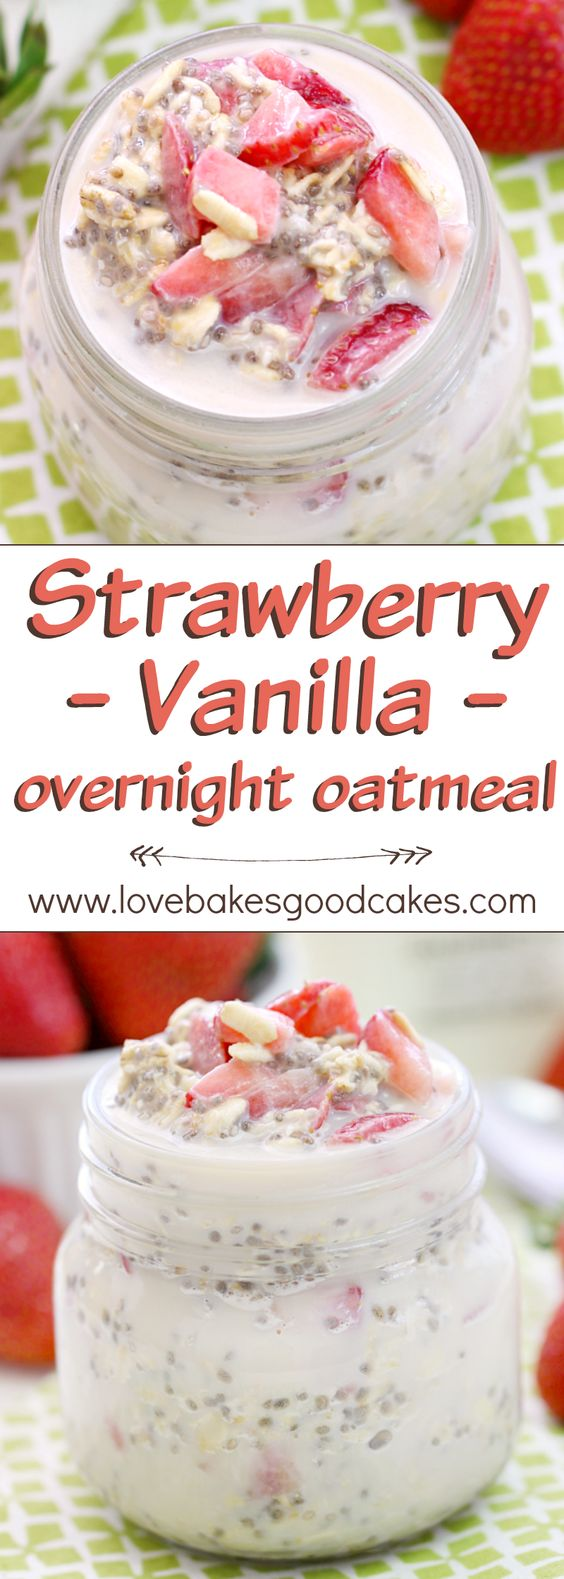 Strawberry Vanilla Overnight Oatmeal